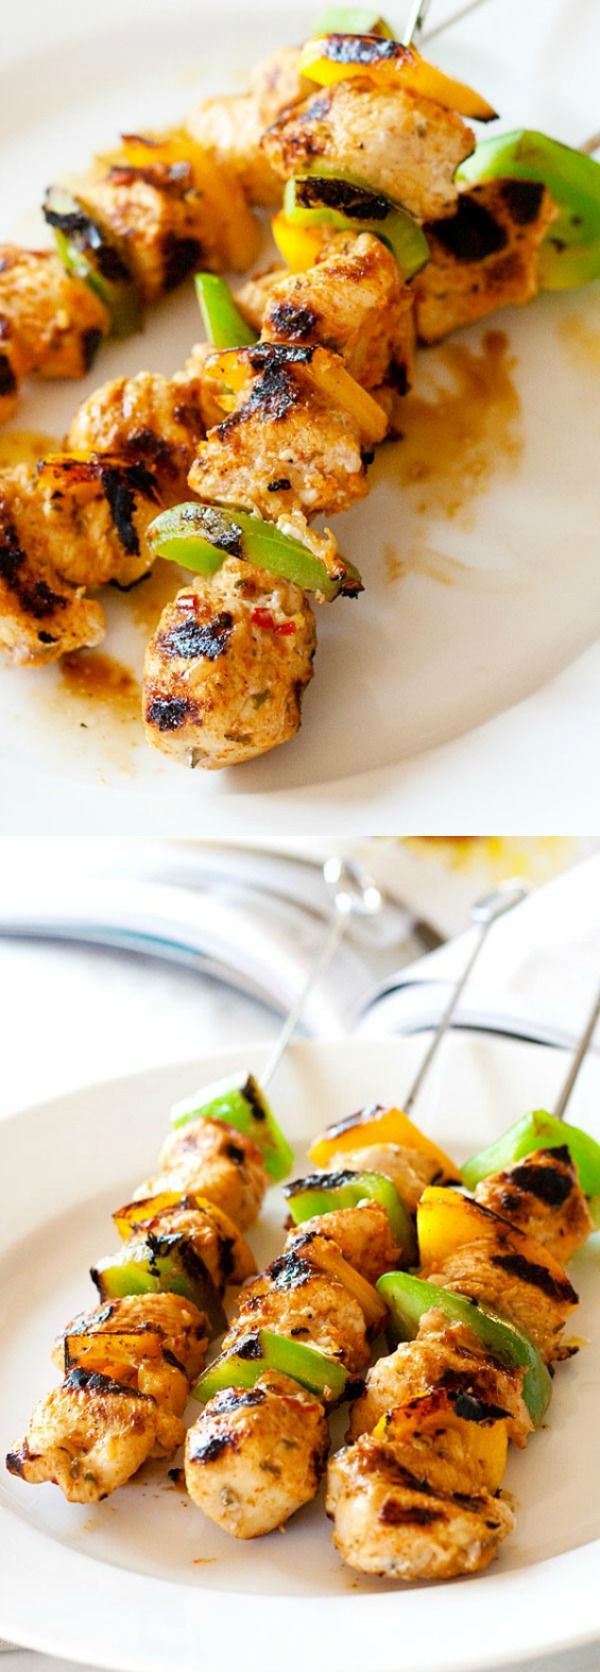 Chicken kebab - marinated with olive oil, lemon juice, cumin and paprika, this chicken kebab recipe is the BEST | rasamalaysia.com